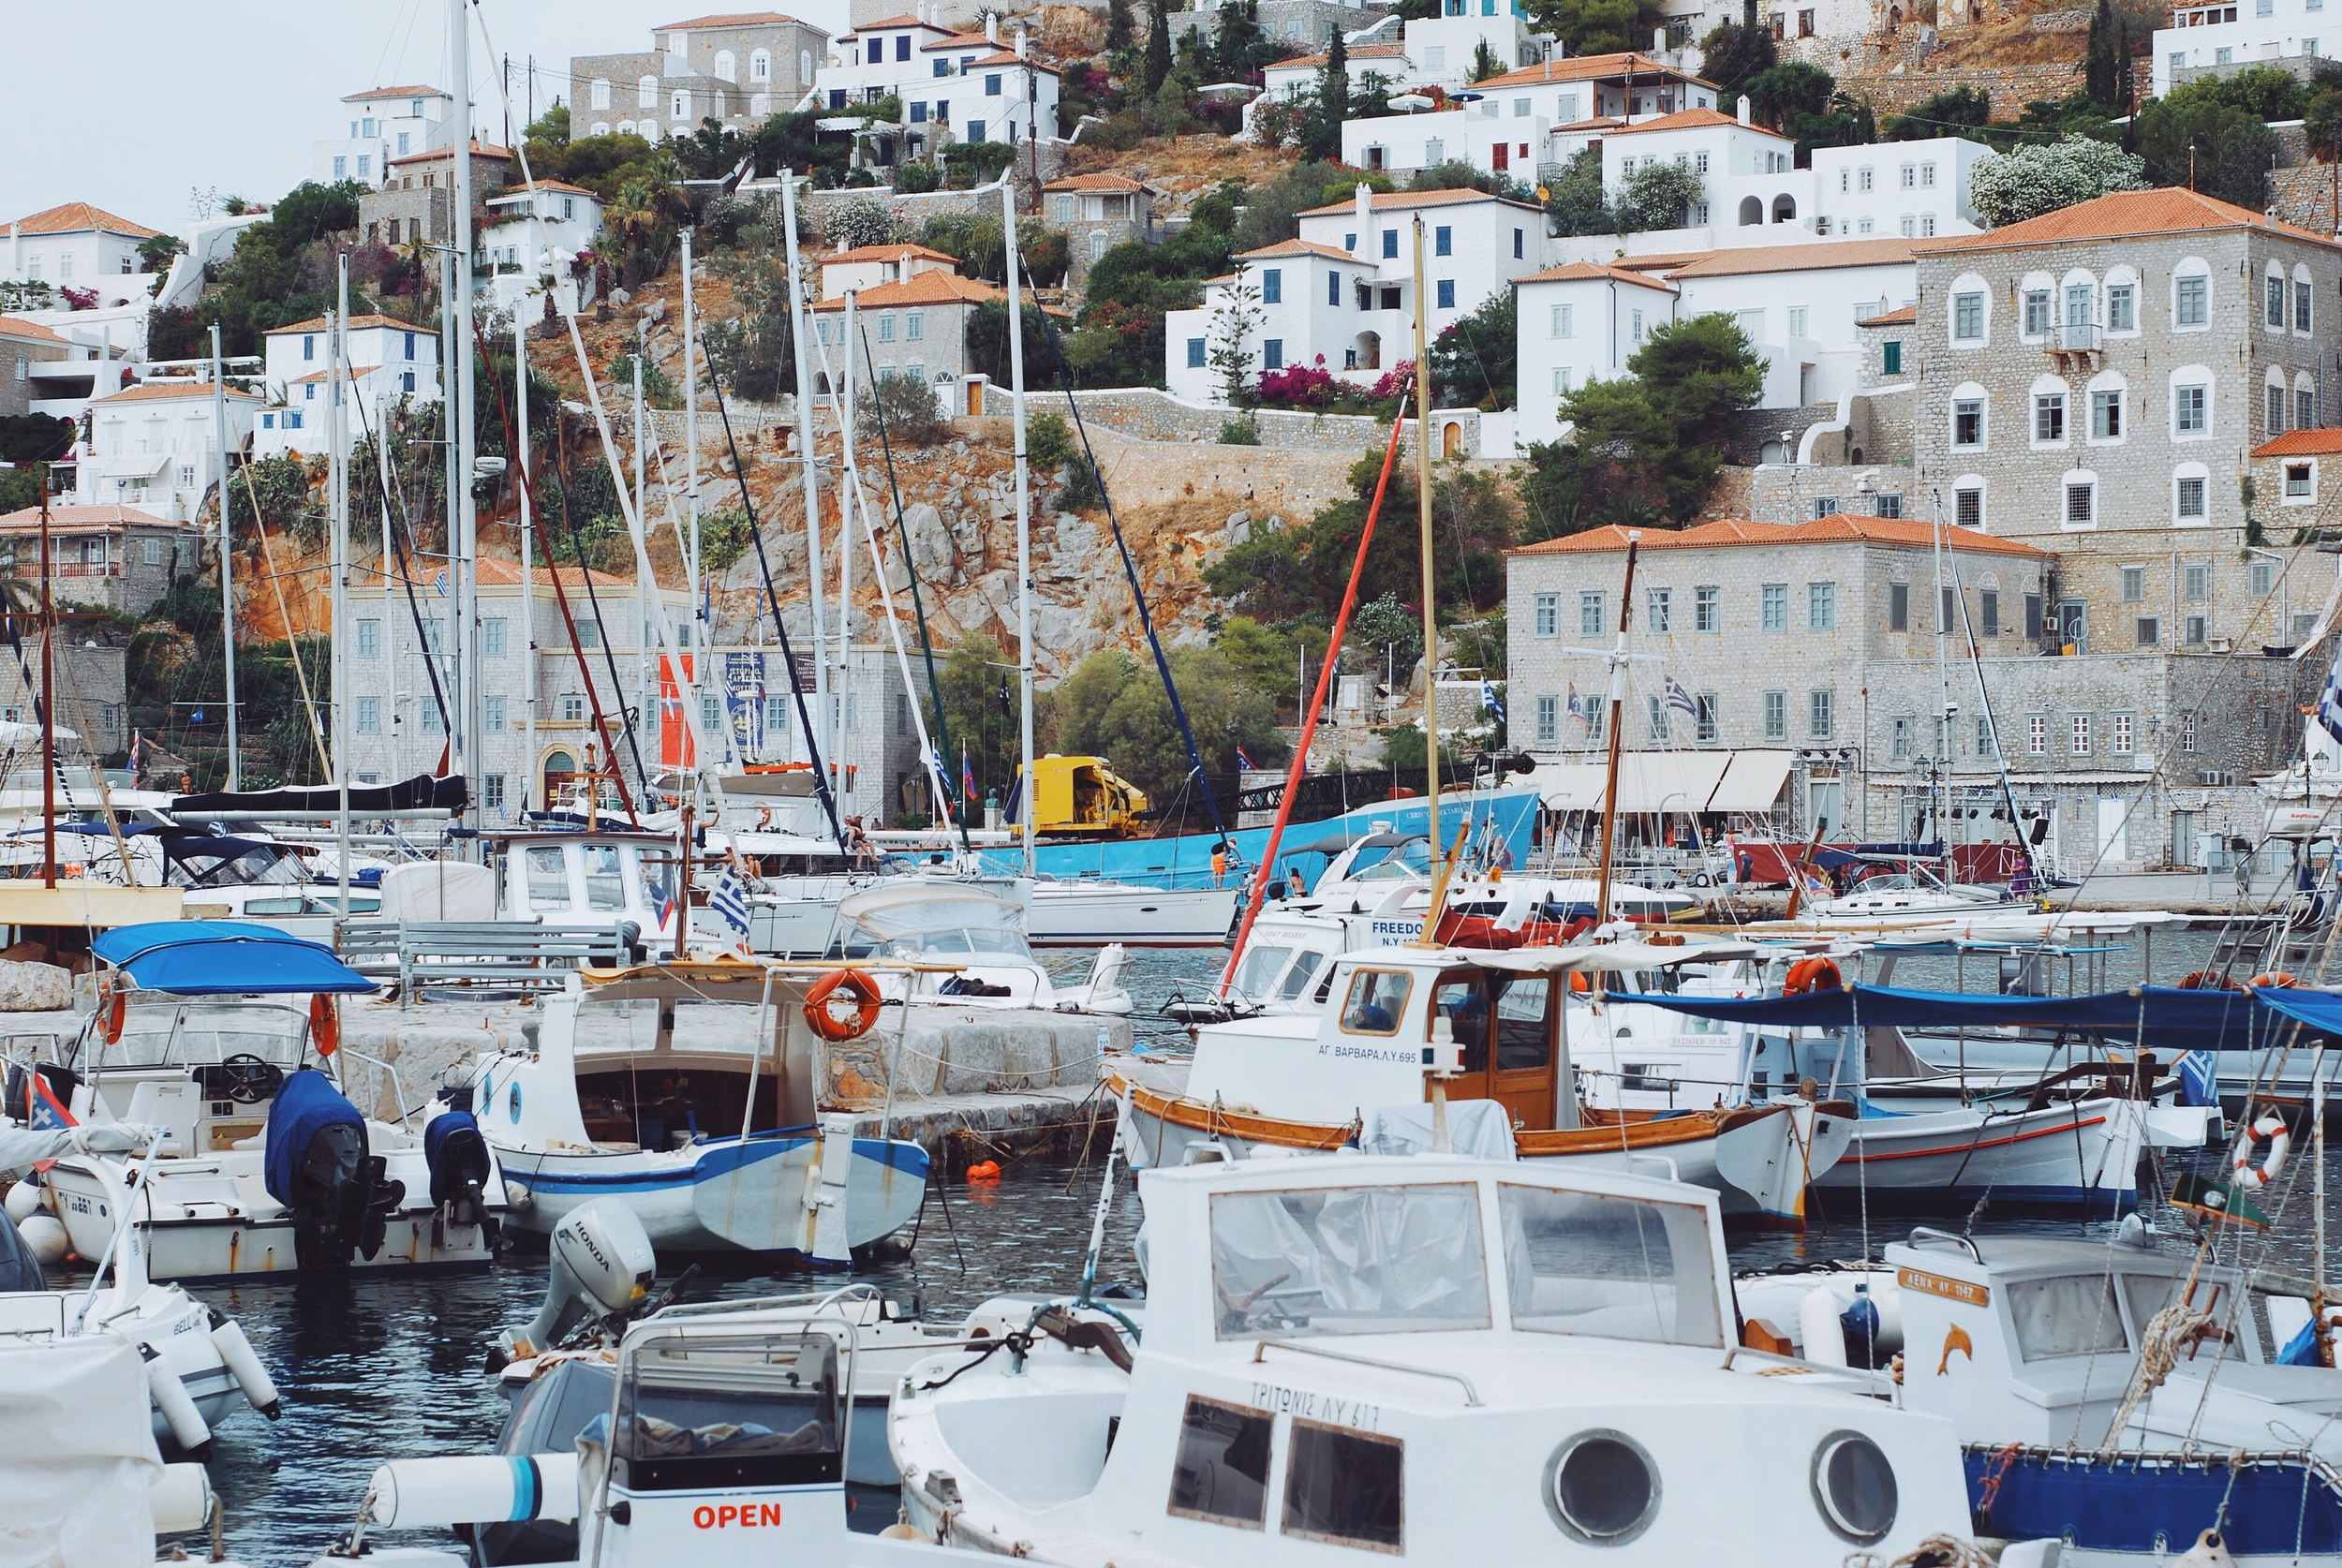 Part II: Hydra Island. One hour from Athens by ferry.